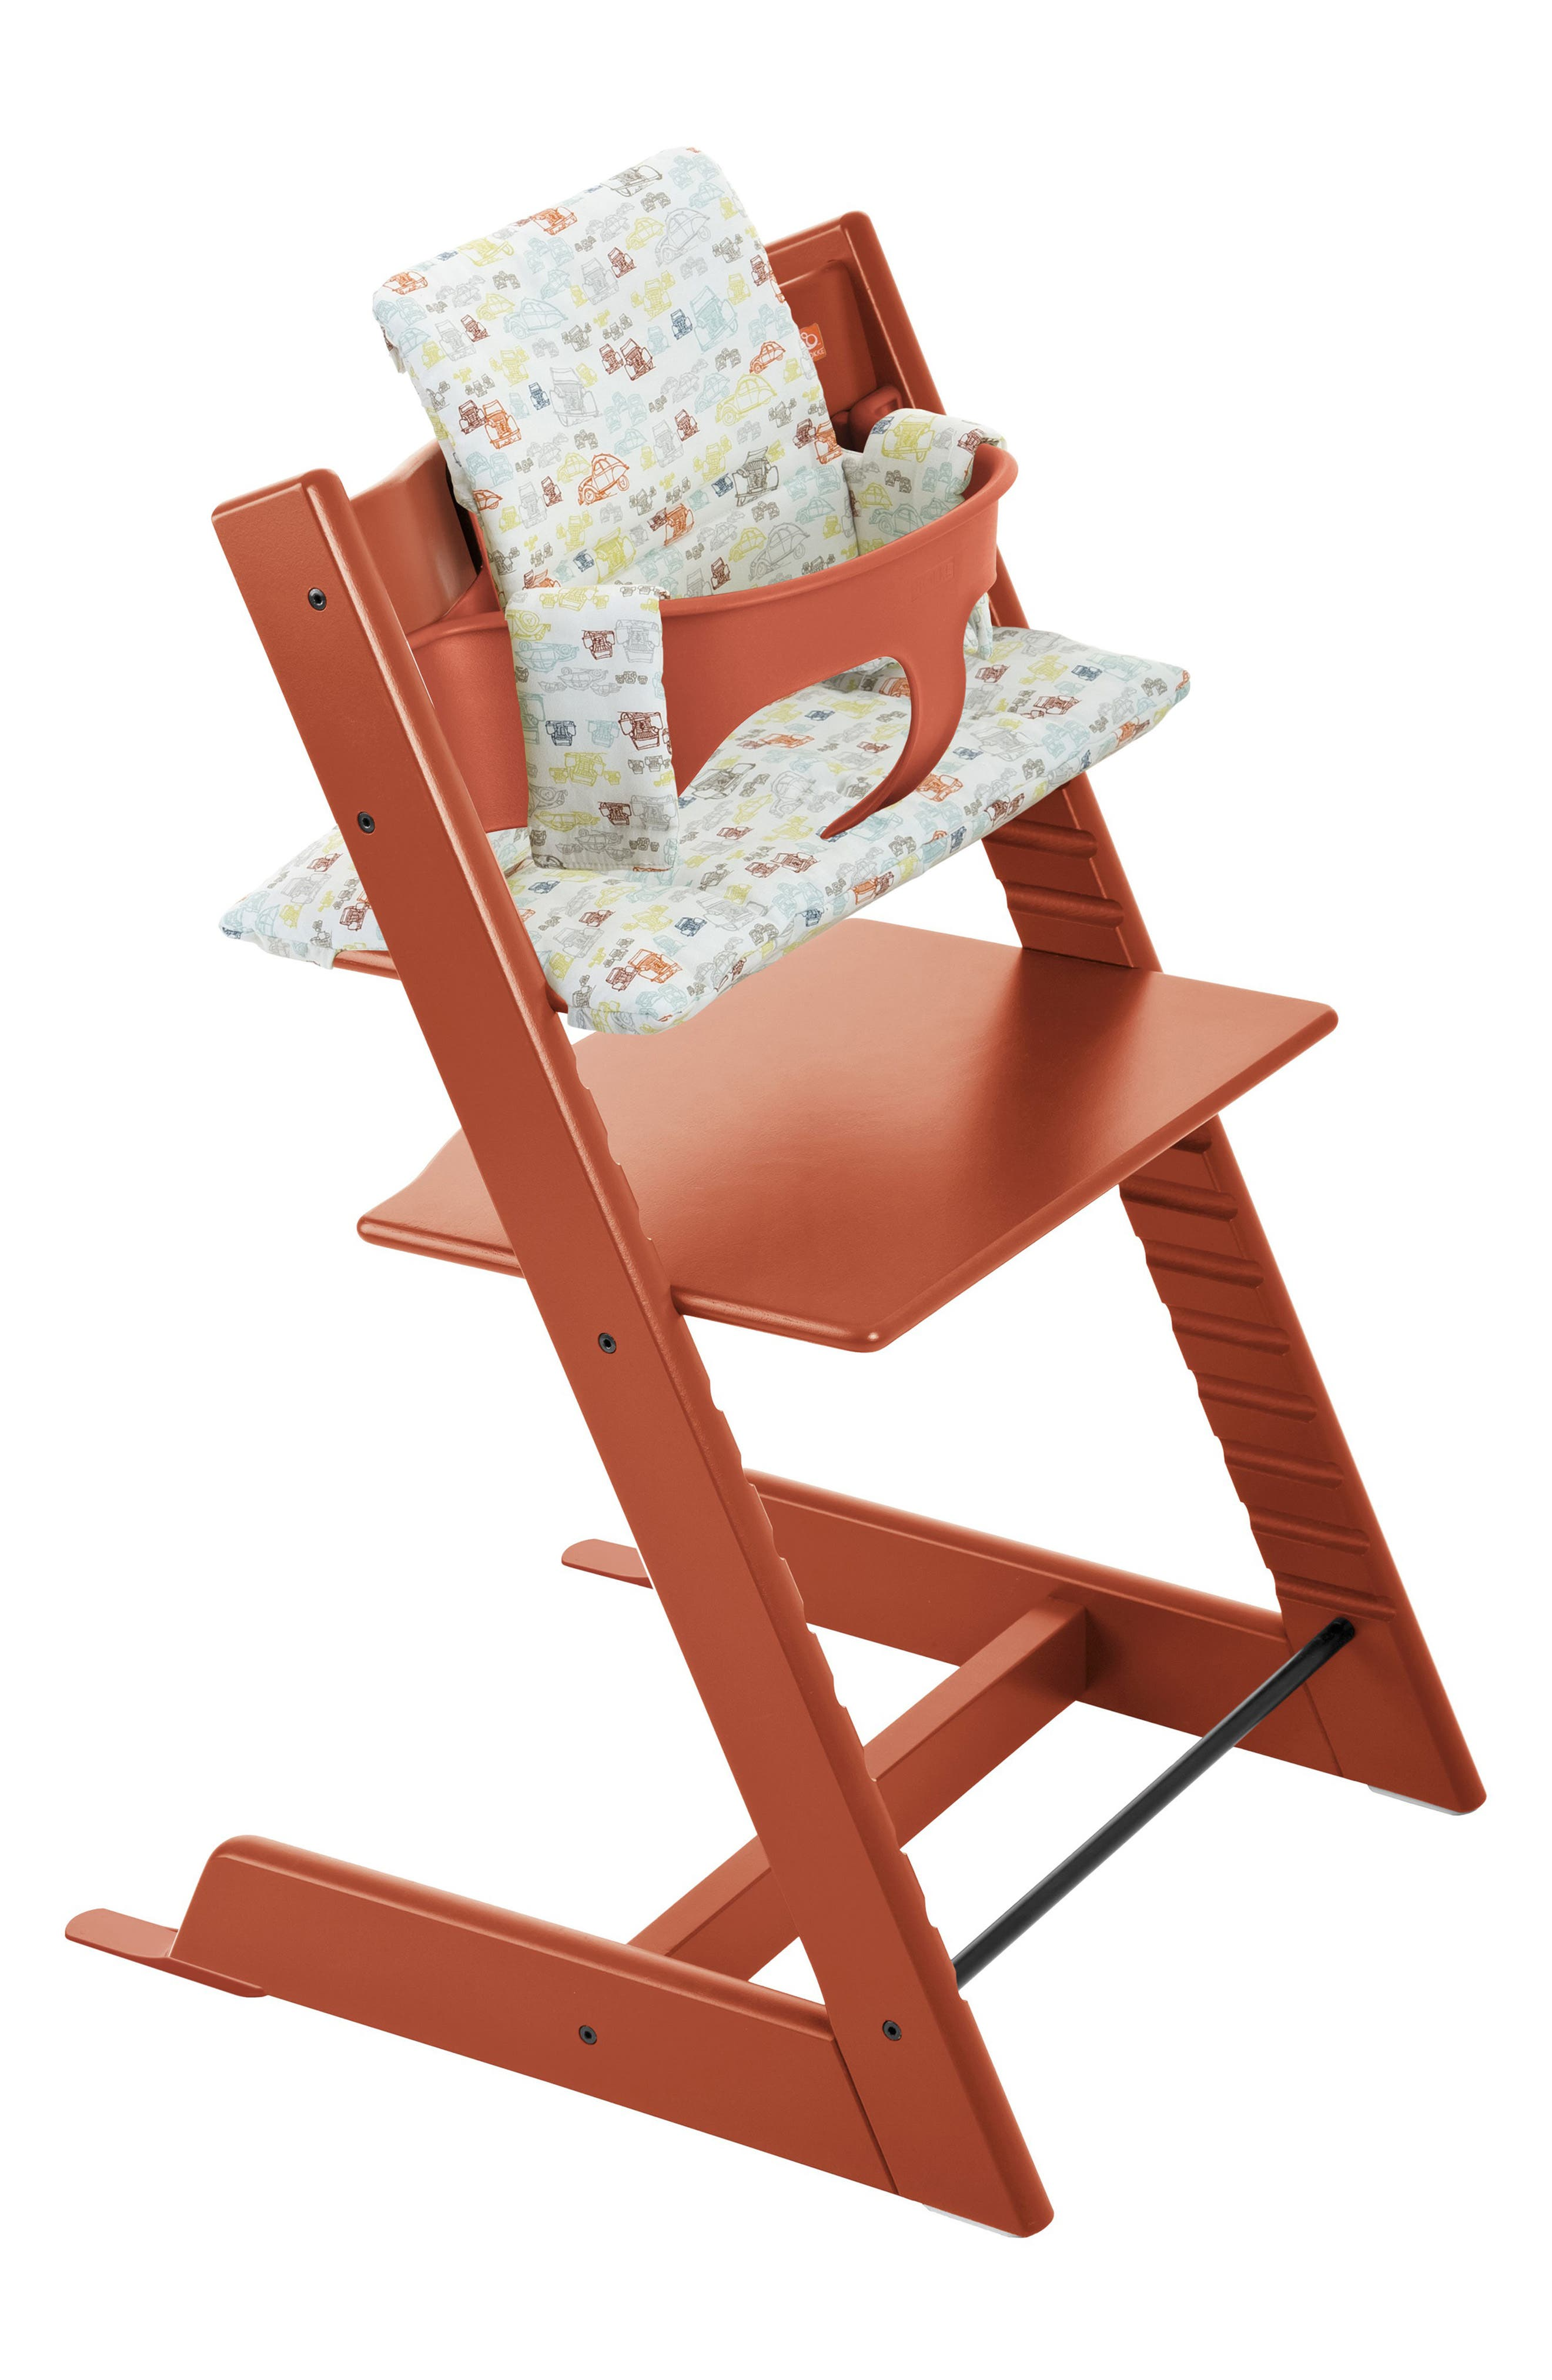 Main Image - Stokke Tripp Trapp® High Chair, Baby Set, Cushion & Tray Set (Nordstrom Exclusive)